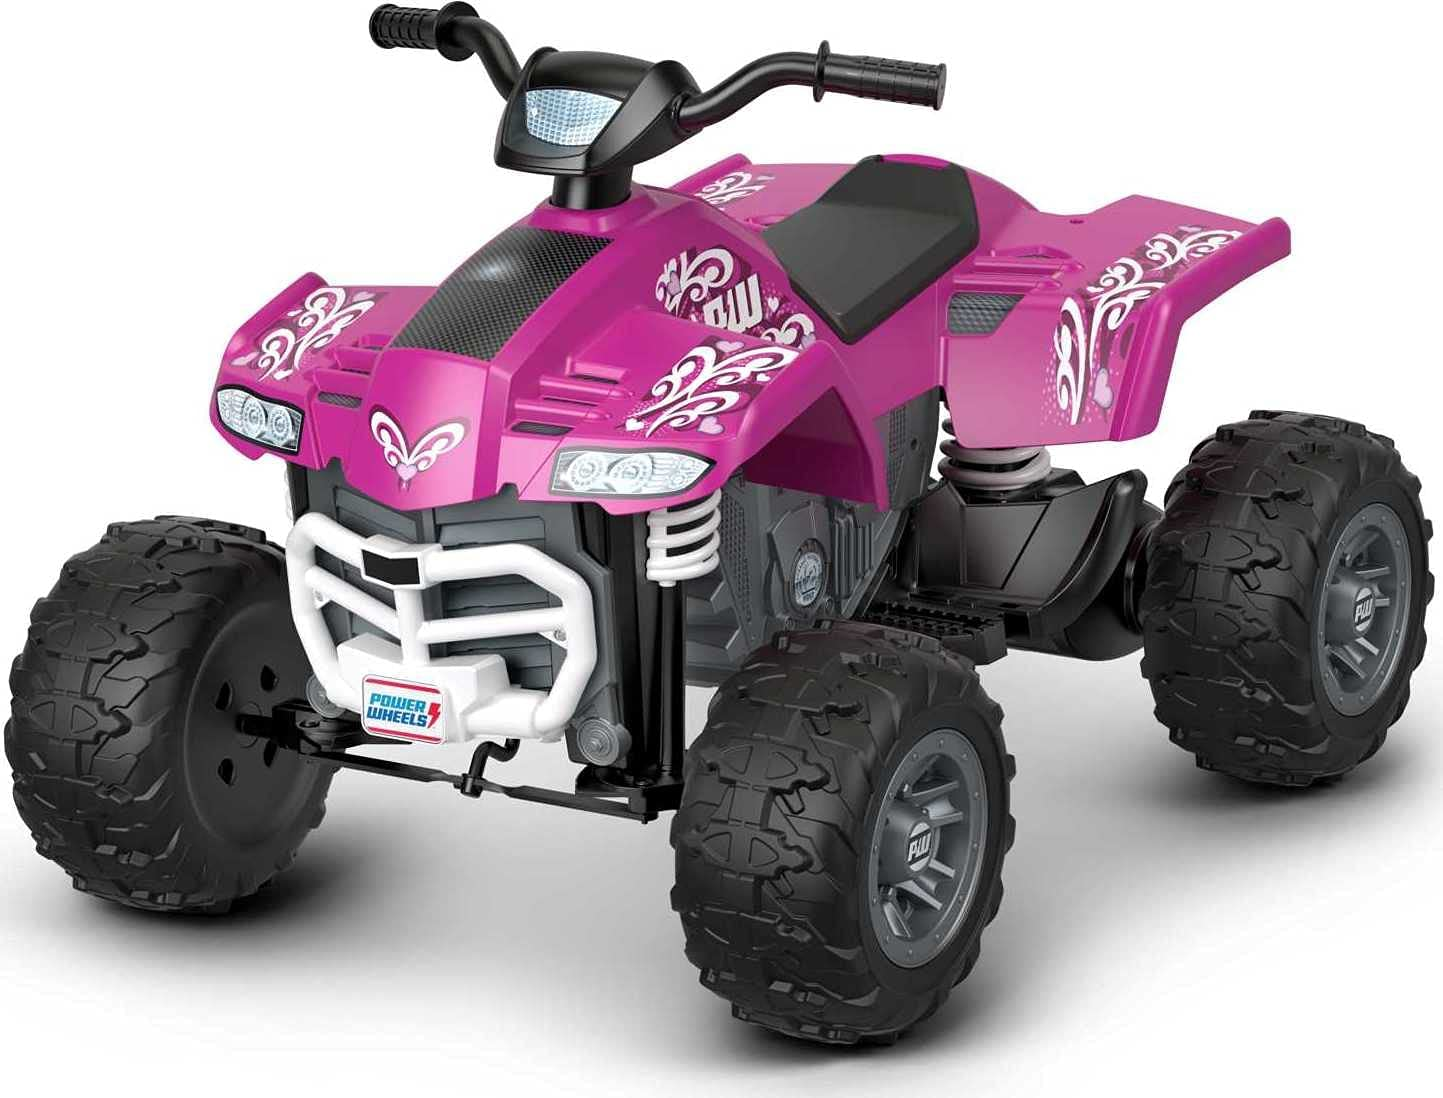 Best Power Wheels For Grass And Hills